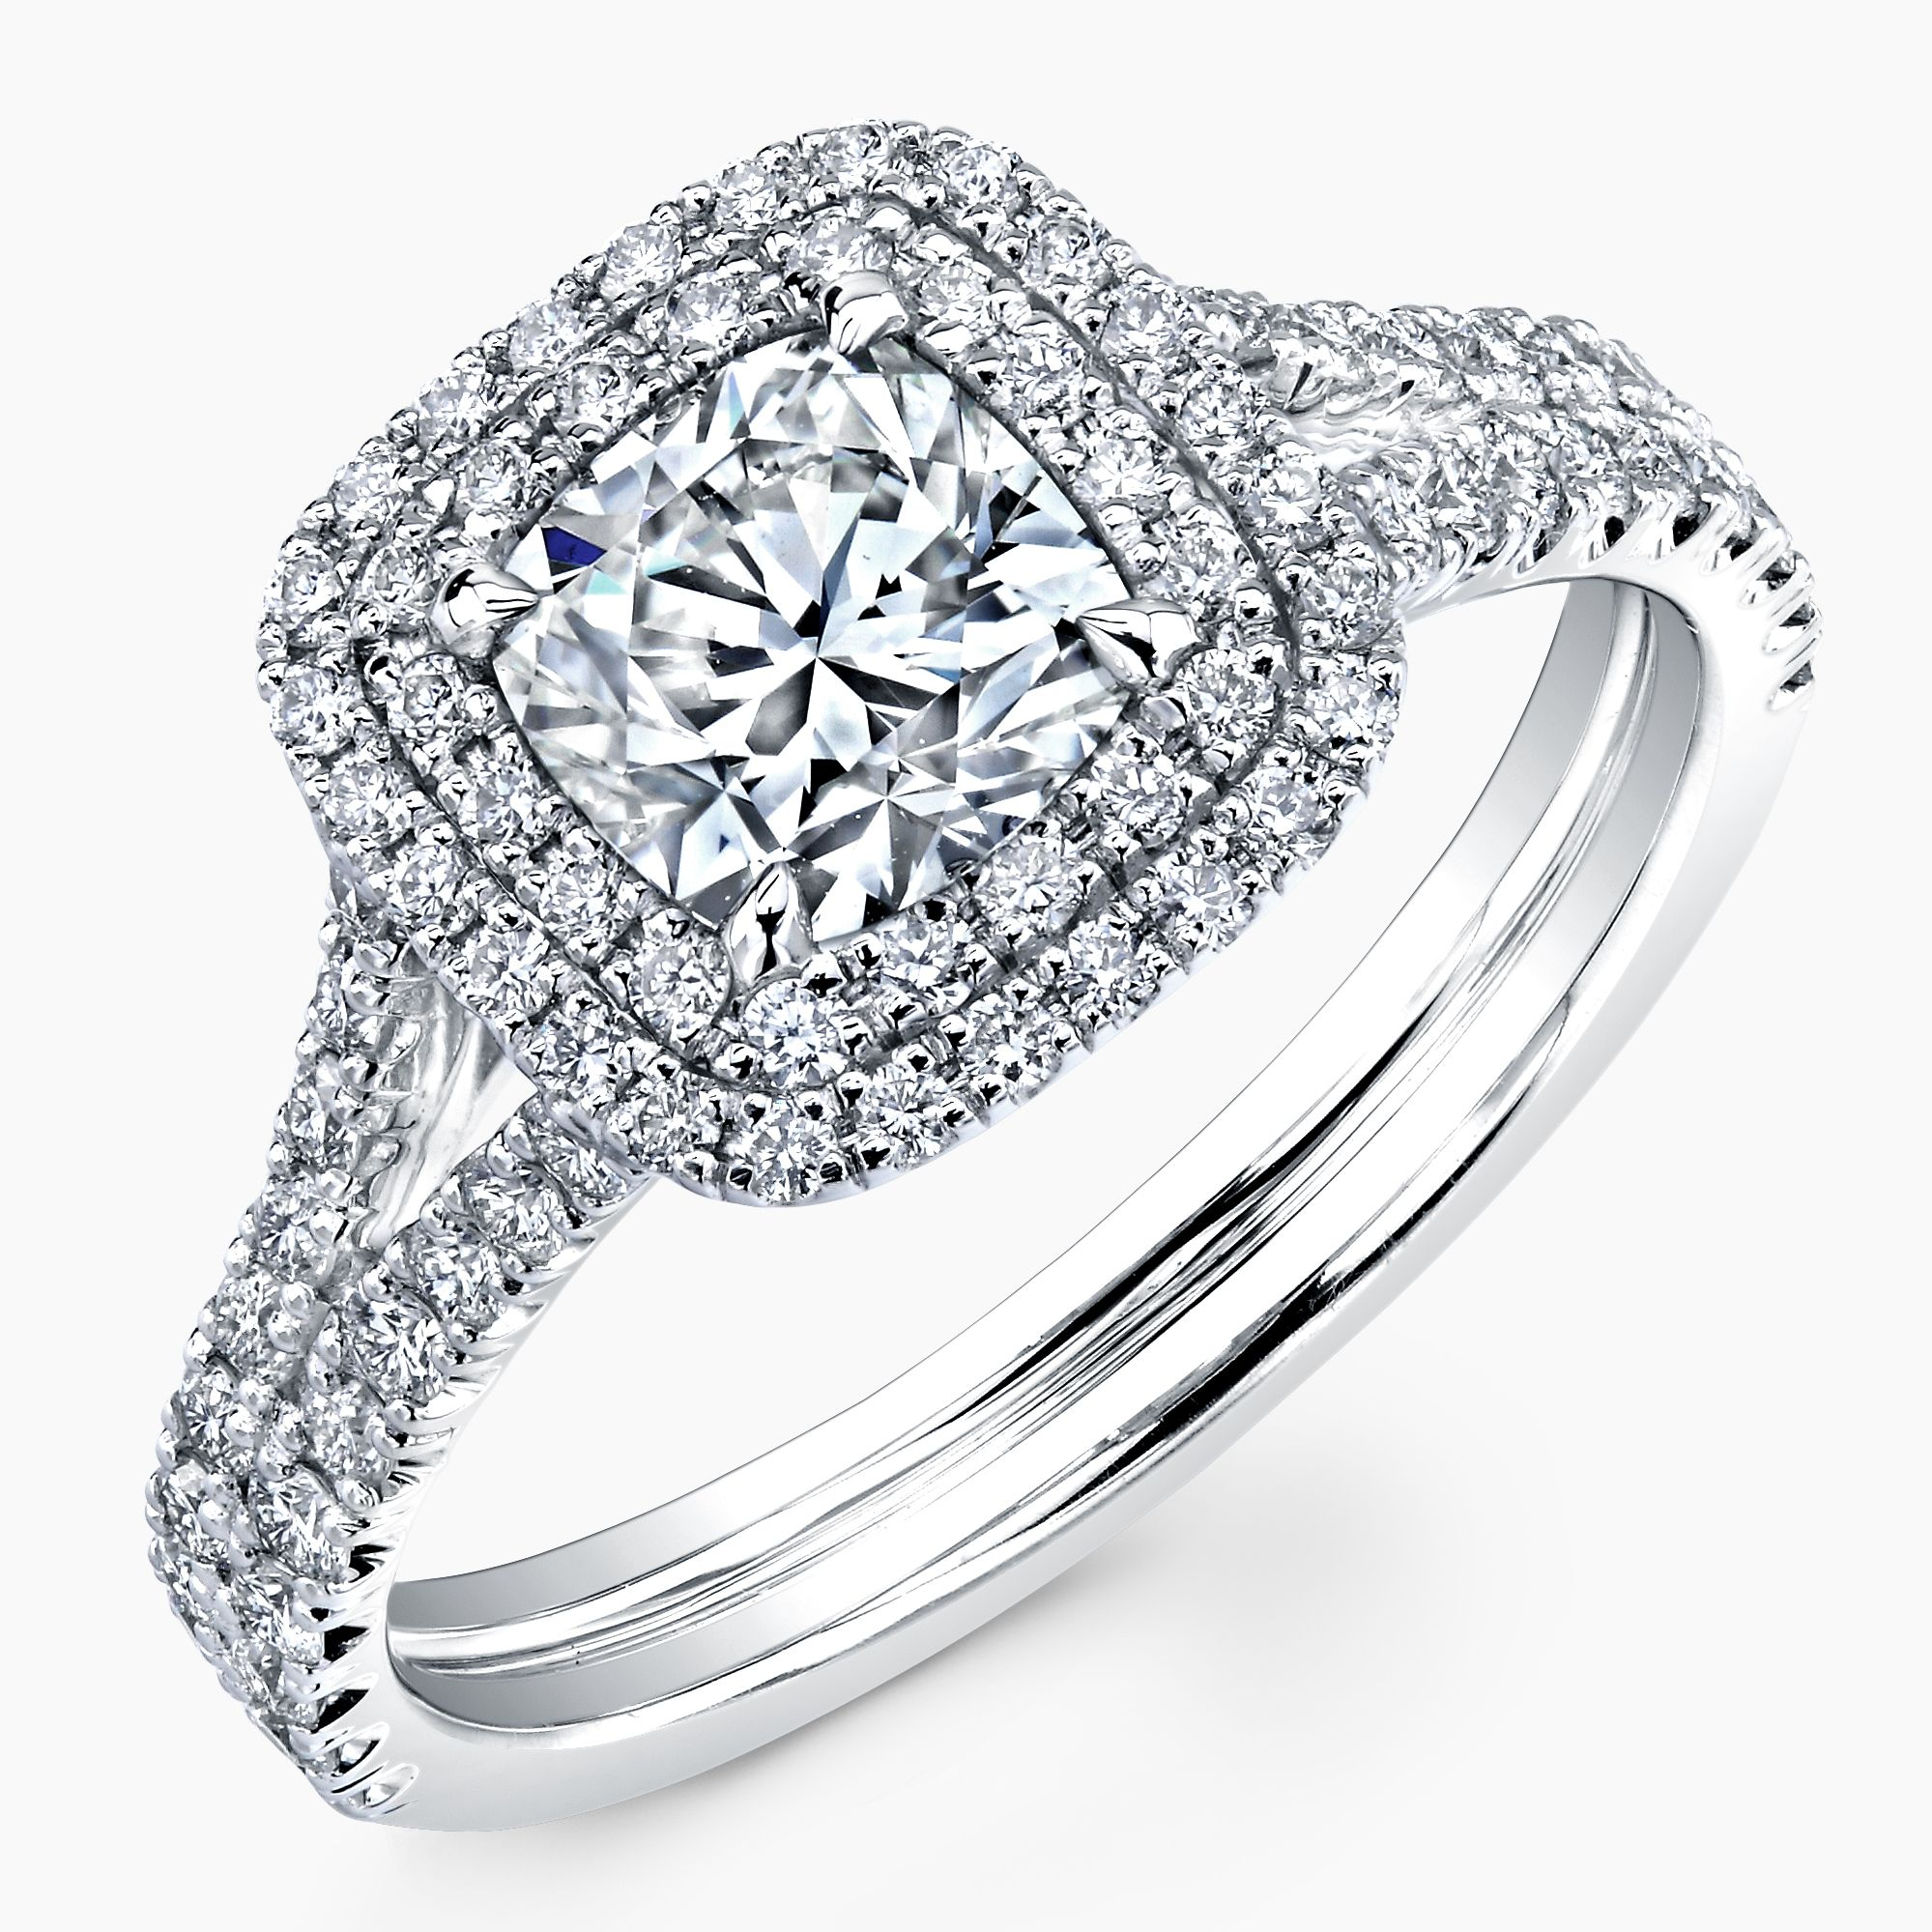 Cushion cut diamond set in 18k white gold split shank with double halo pave r